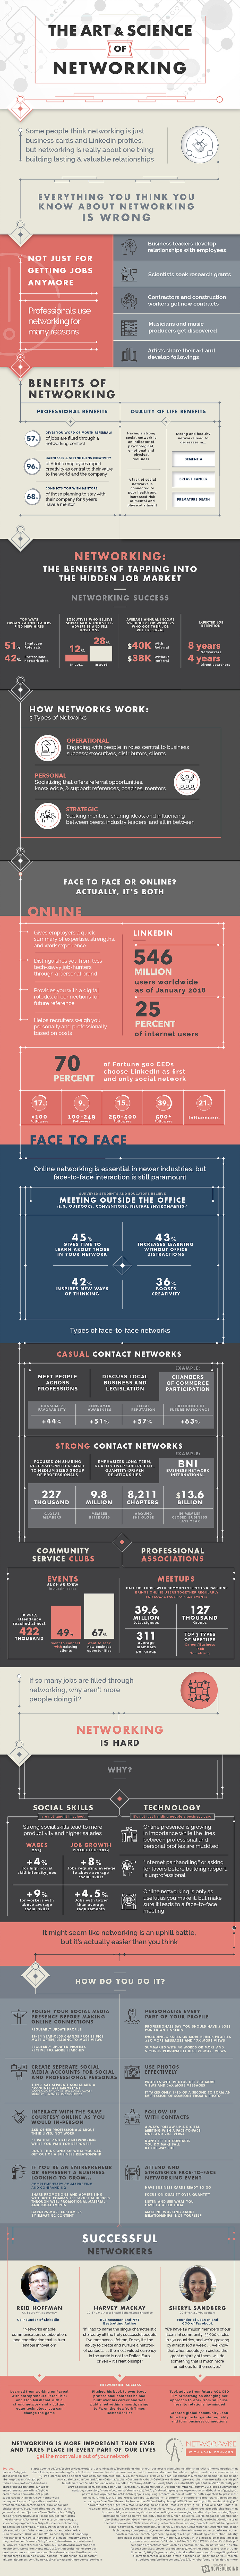 The Power of Effective Networking: How to Create and Nurture Contacts and Build Strong Relationships - Infographic